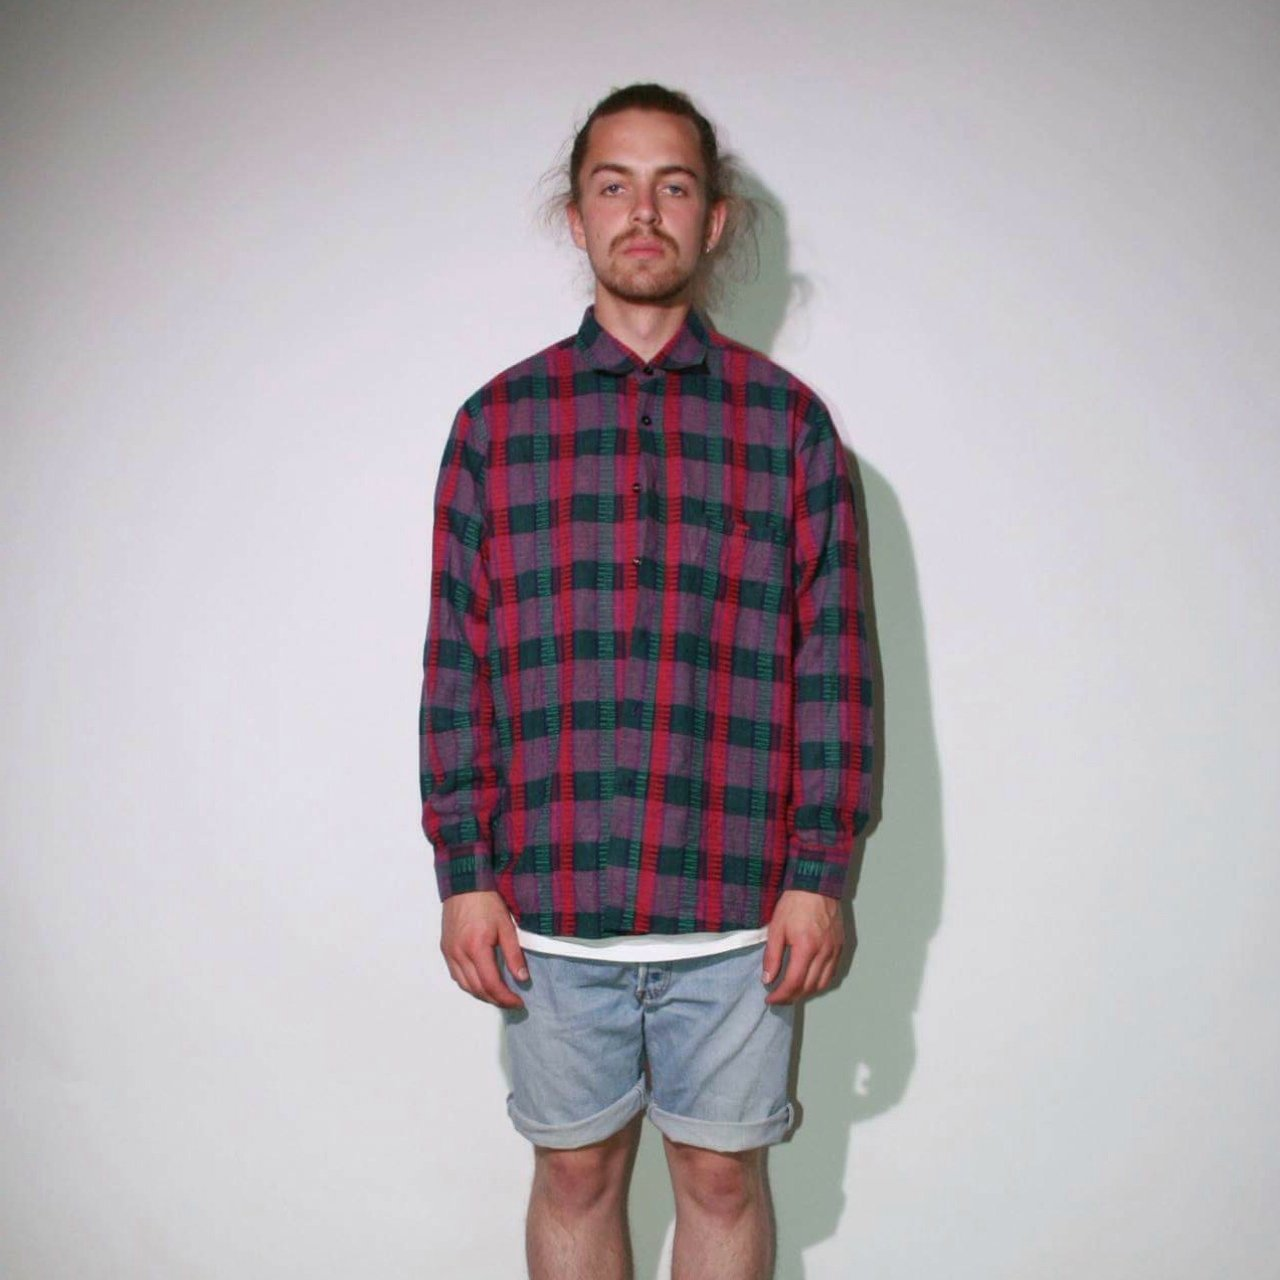 5e4966872 How To Wear Plaid Shirt With Skinny Jeans - raveitsafe